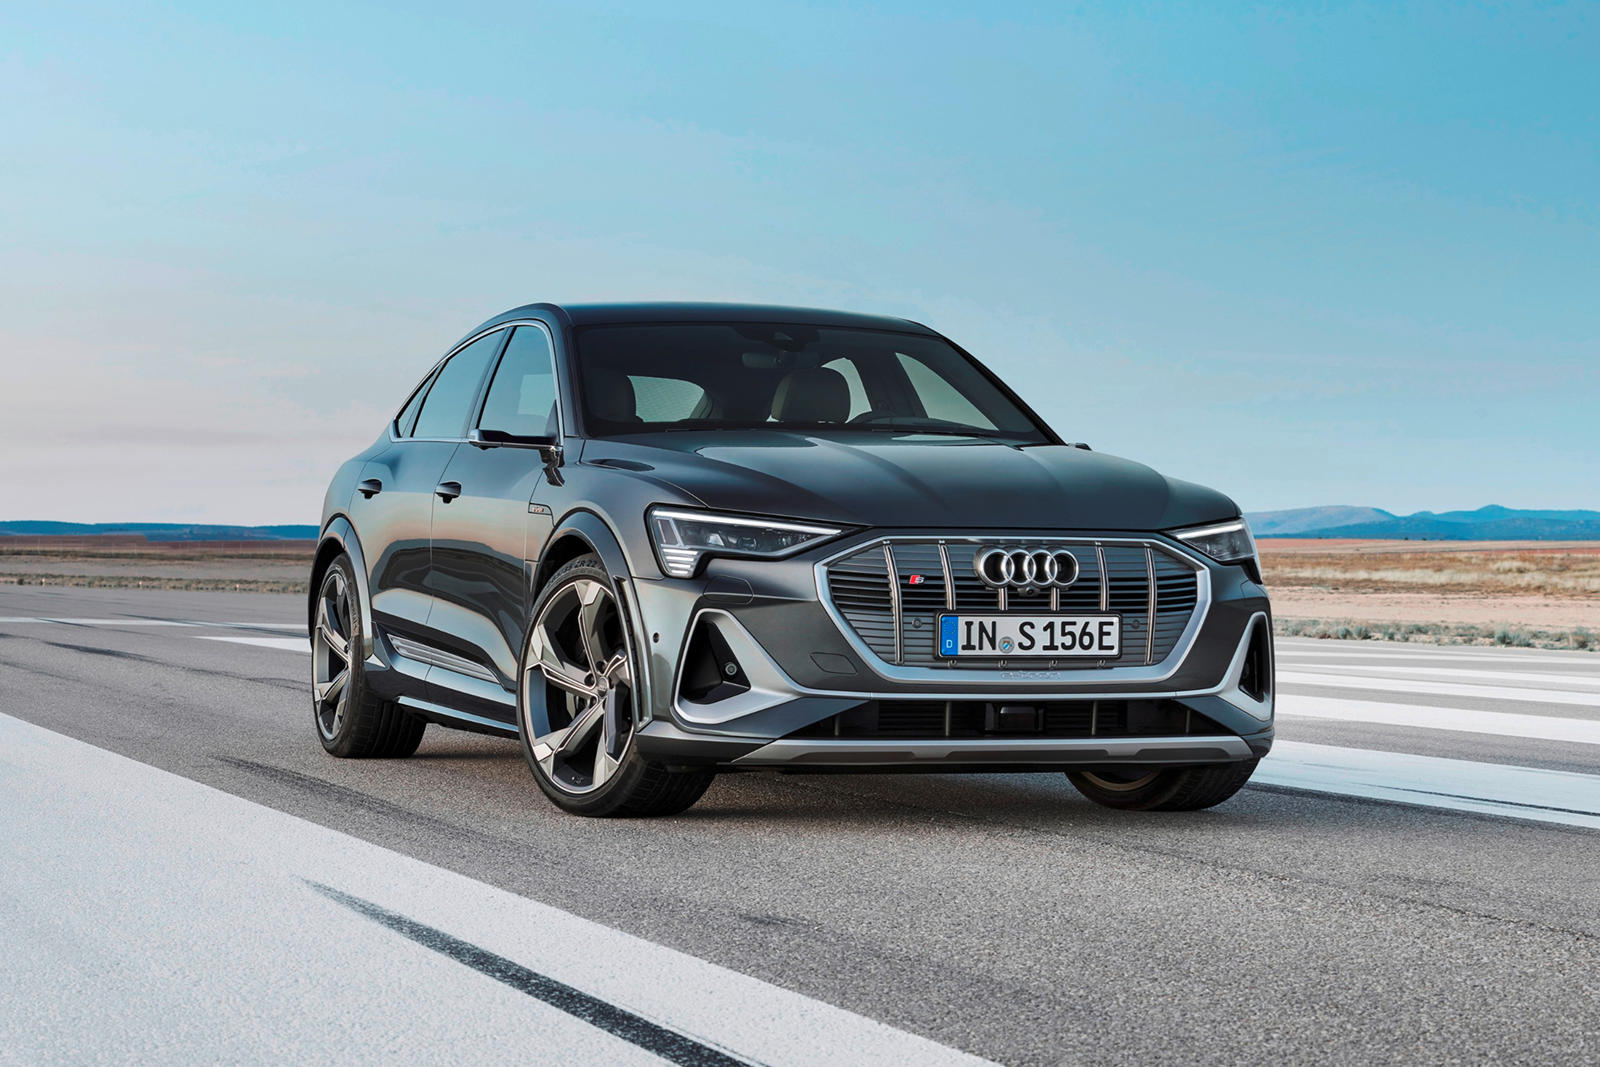 2021 Audi e-tron S Sportback: Review, Trims, Specs, Price, New Interior Features, Exterior Design, and Specifications